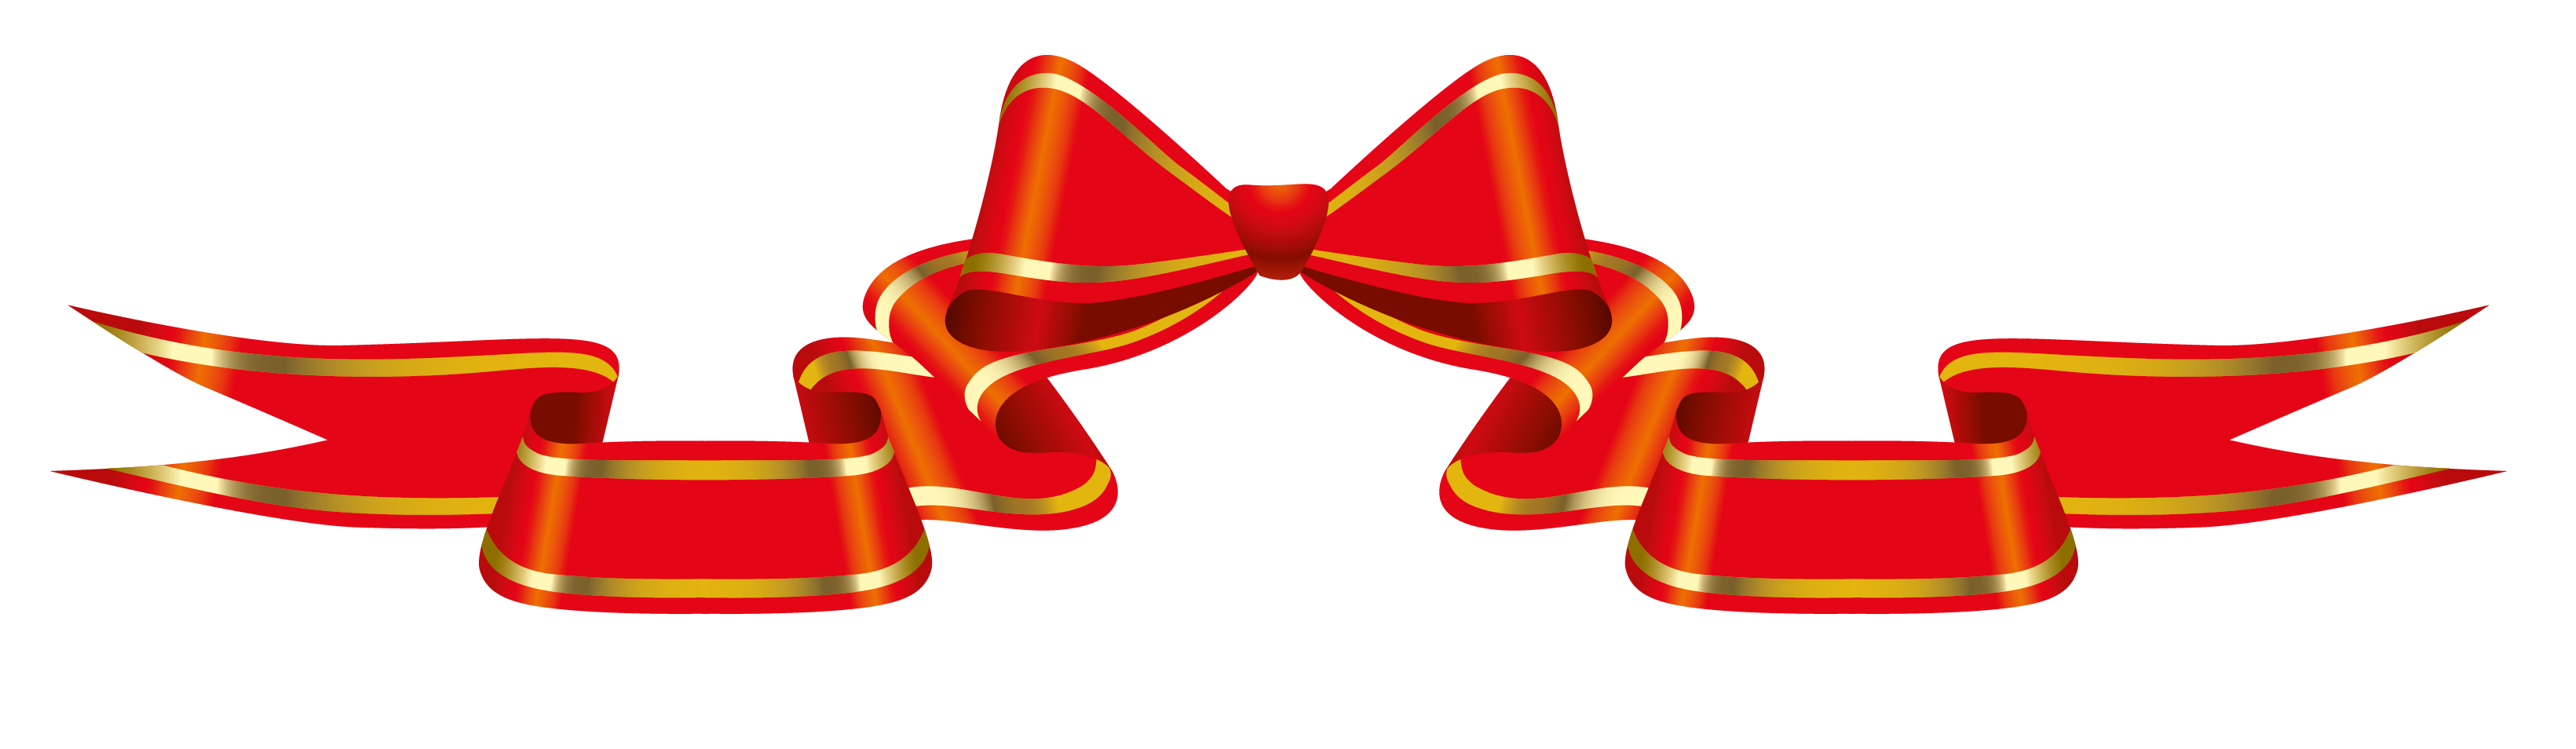 Banners clipart bow. Red banner with png